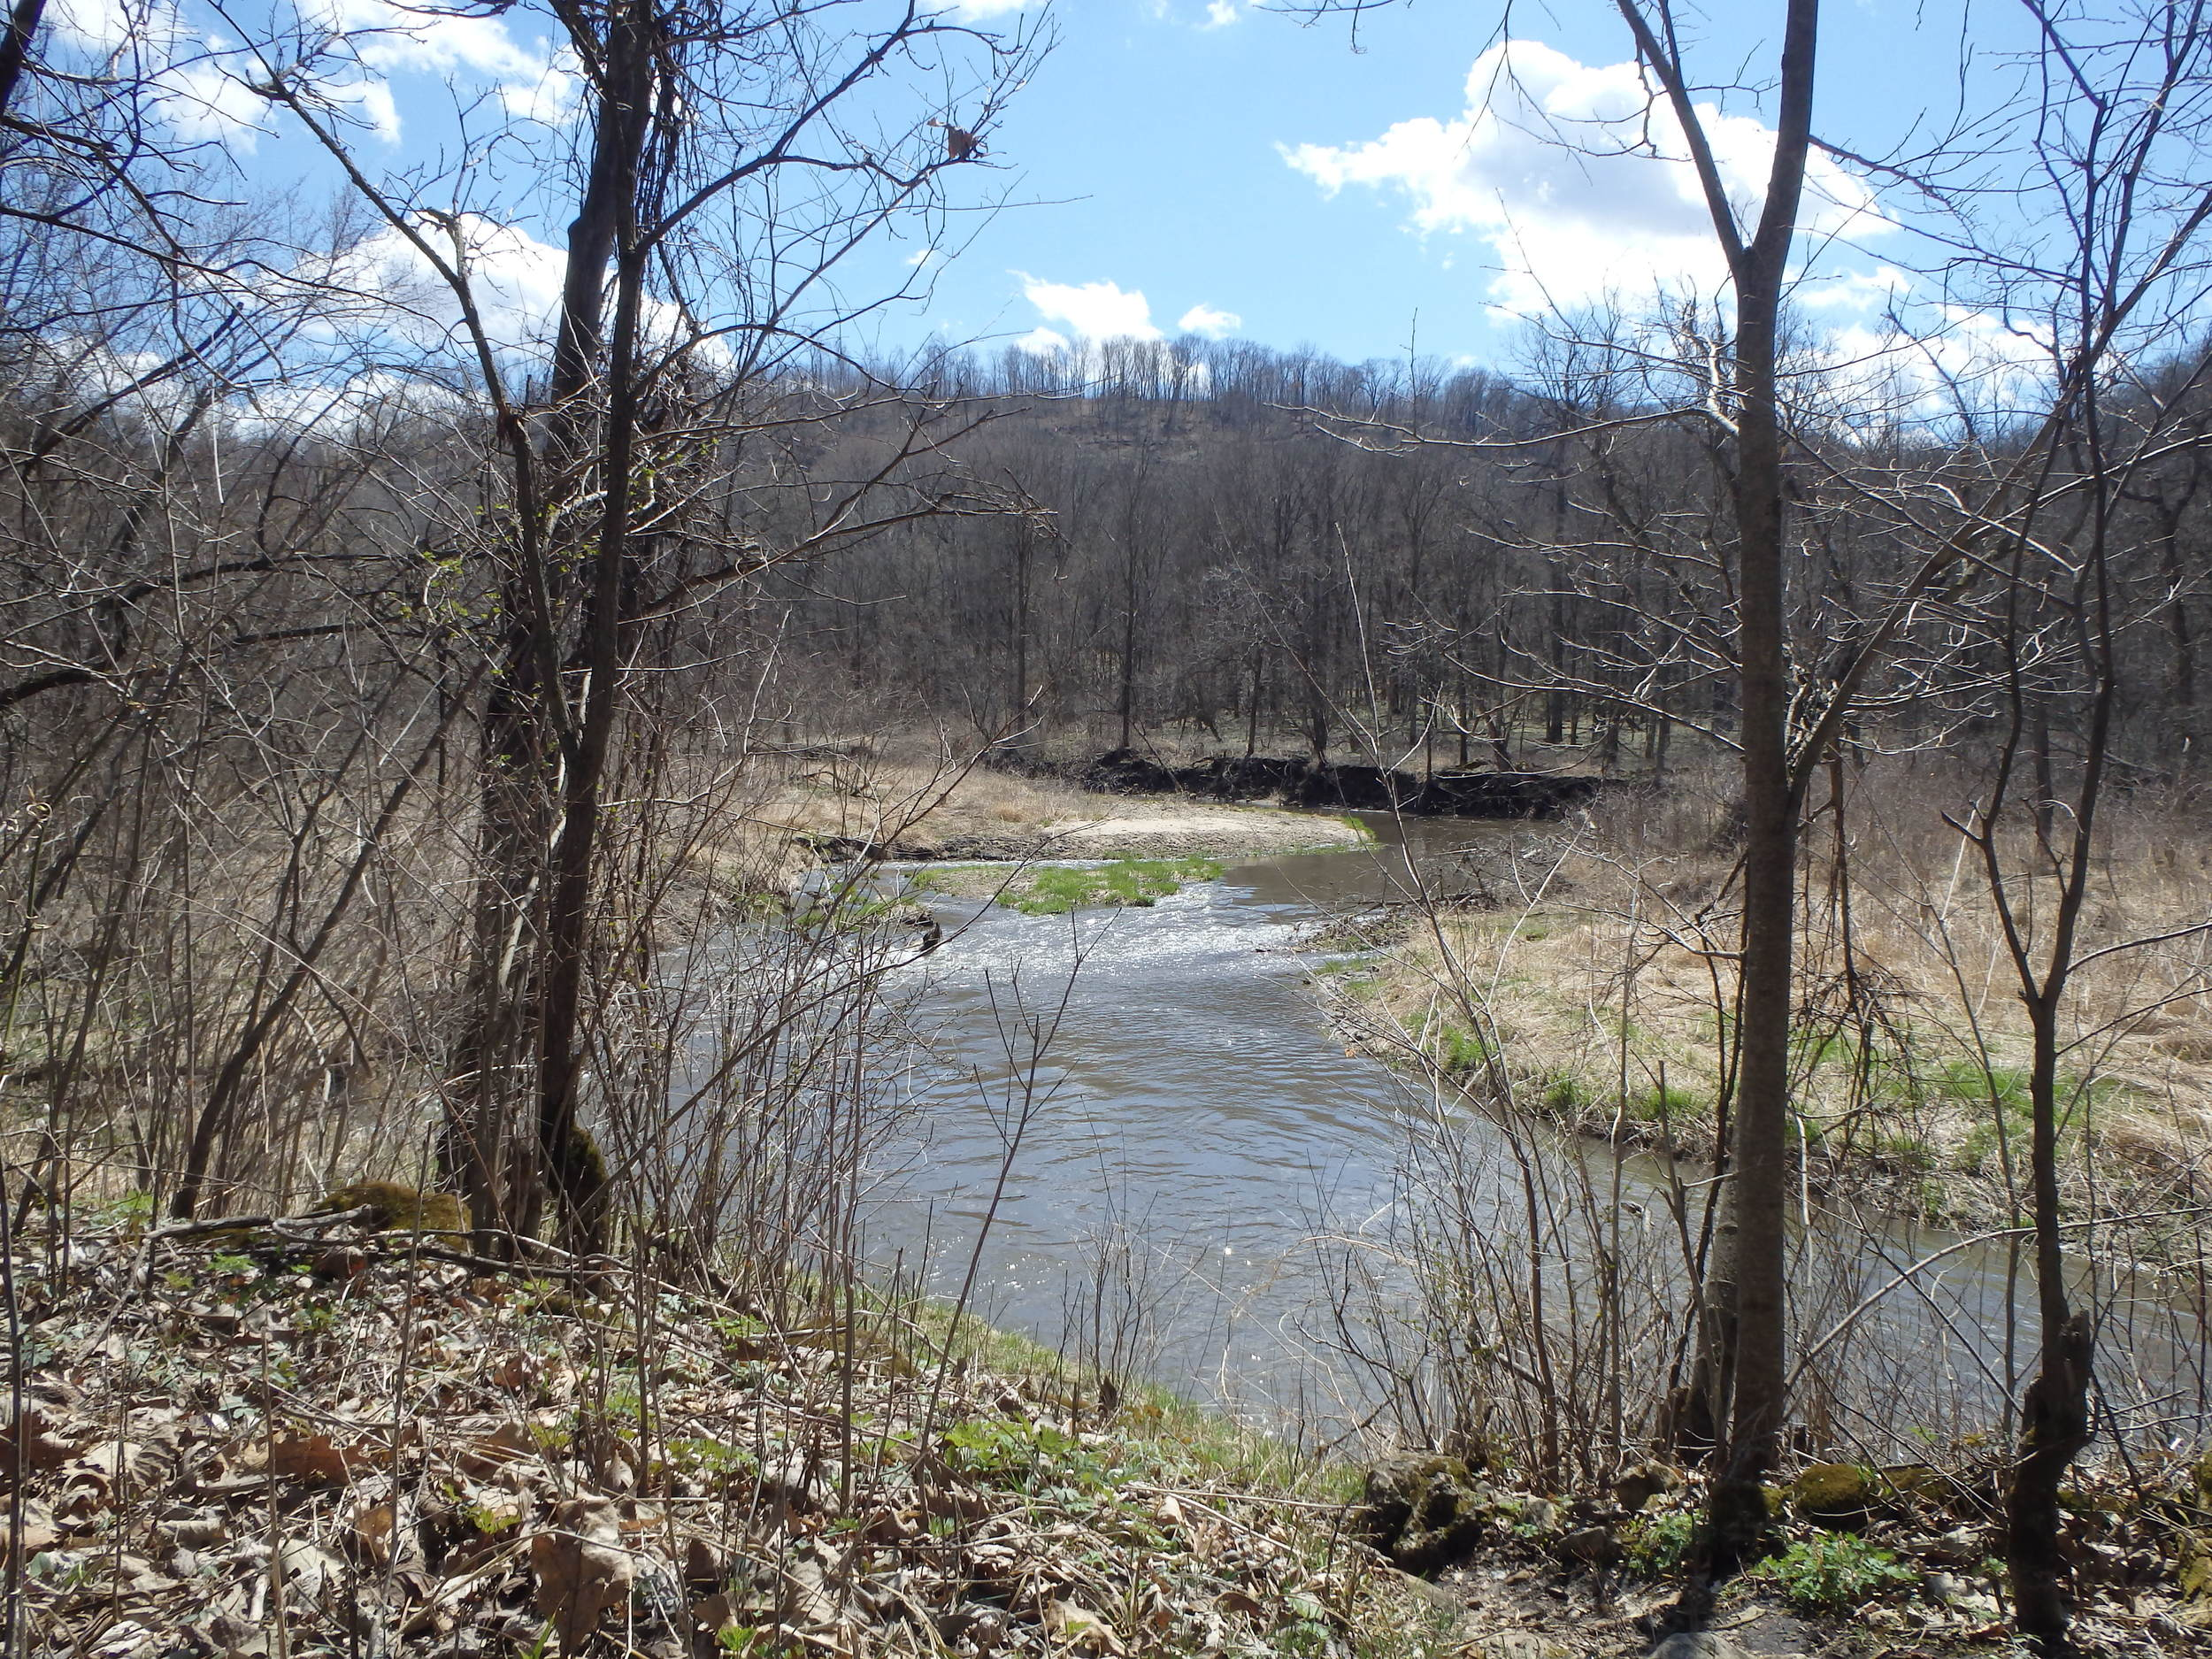 Whitewater River in SE MN